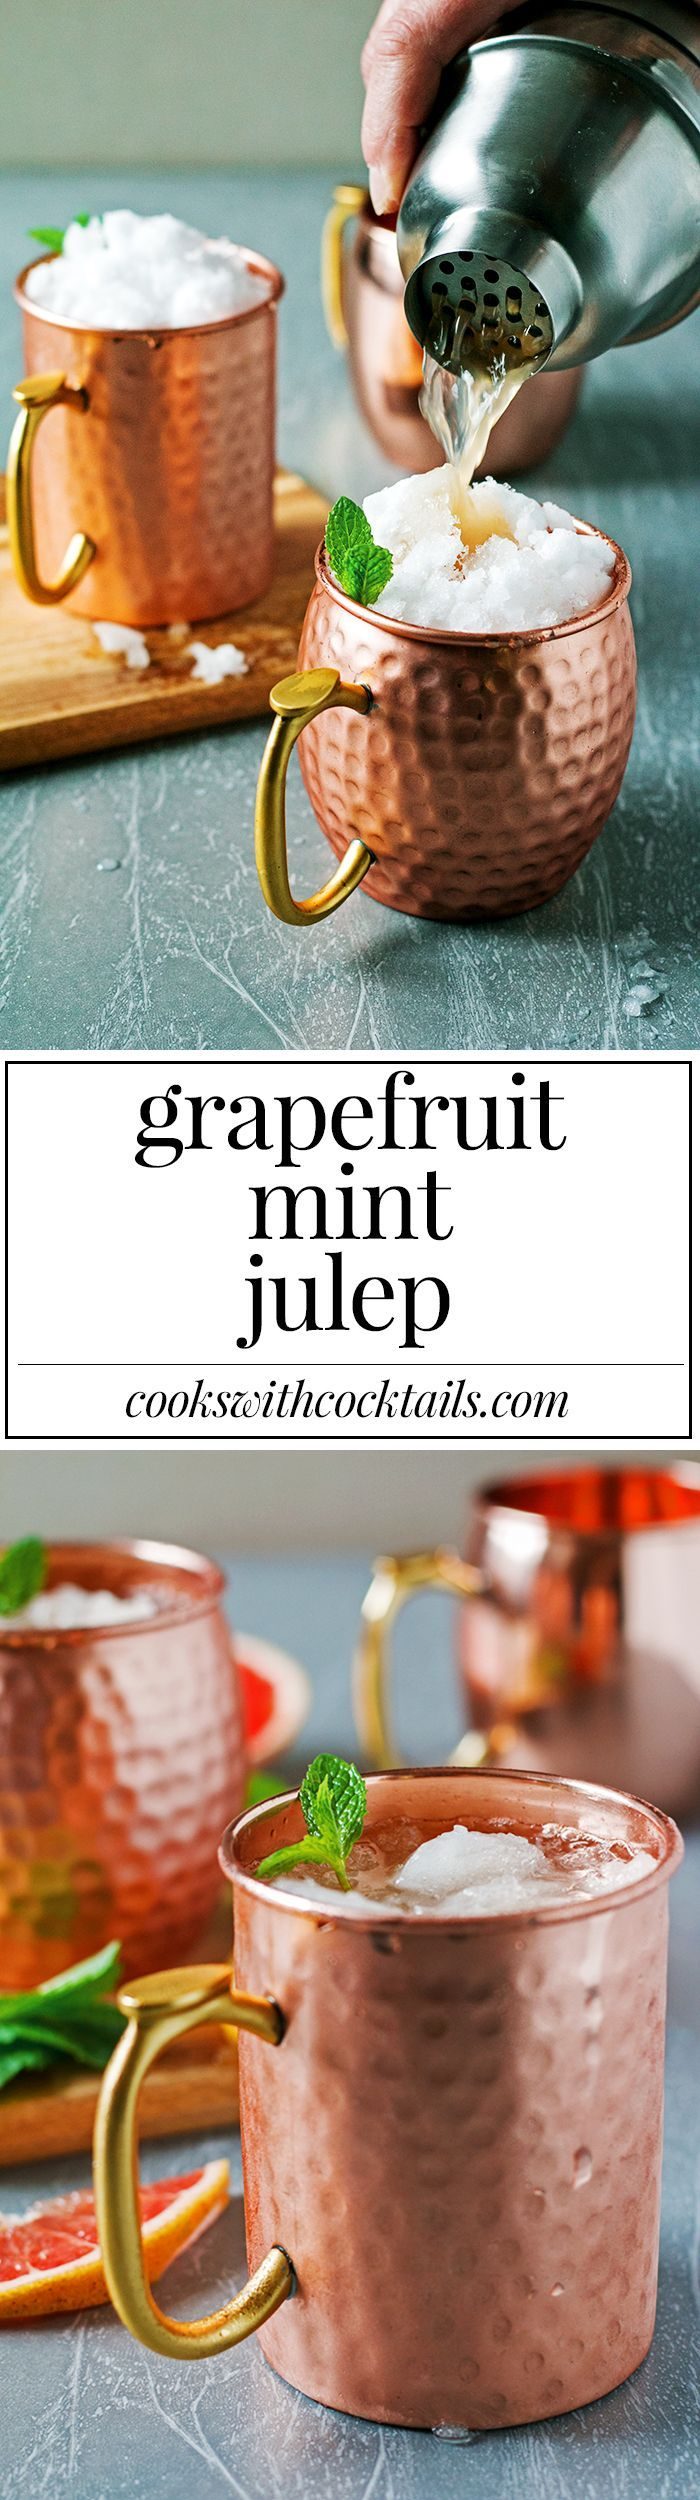 Grapefruit Mint Julep | Cooks With Cocktails